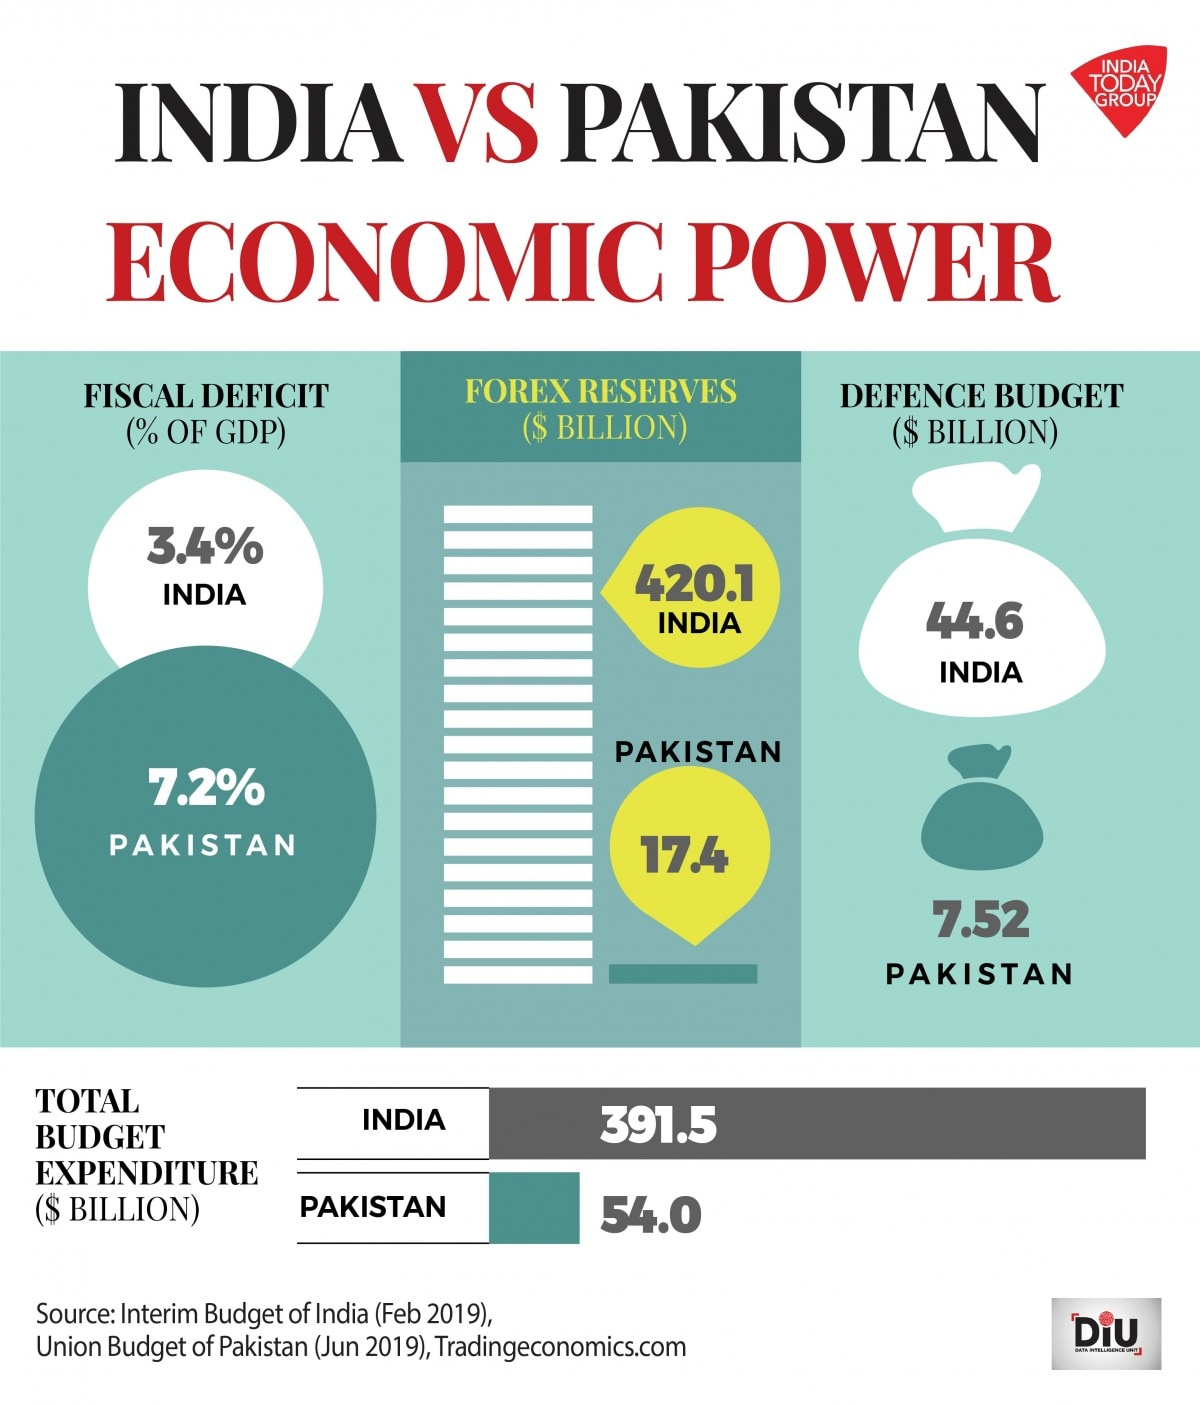 Pakistan's finances in shambles, no match for muscular Indian economy - DIU News